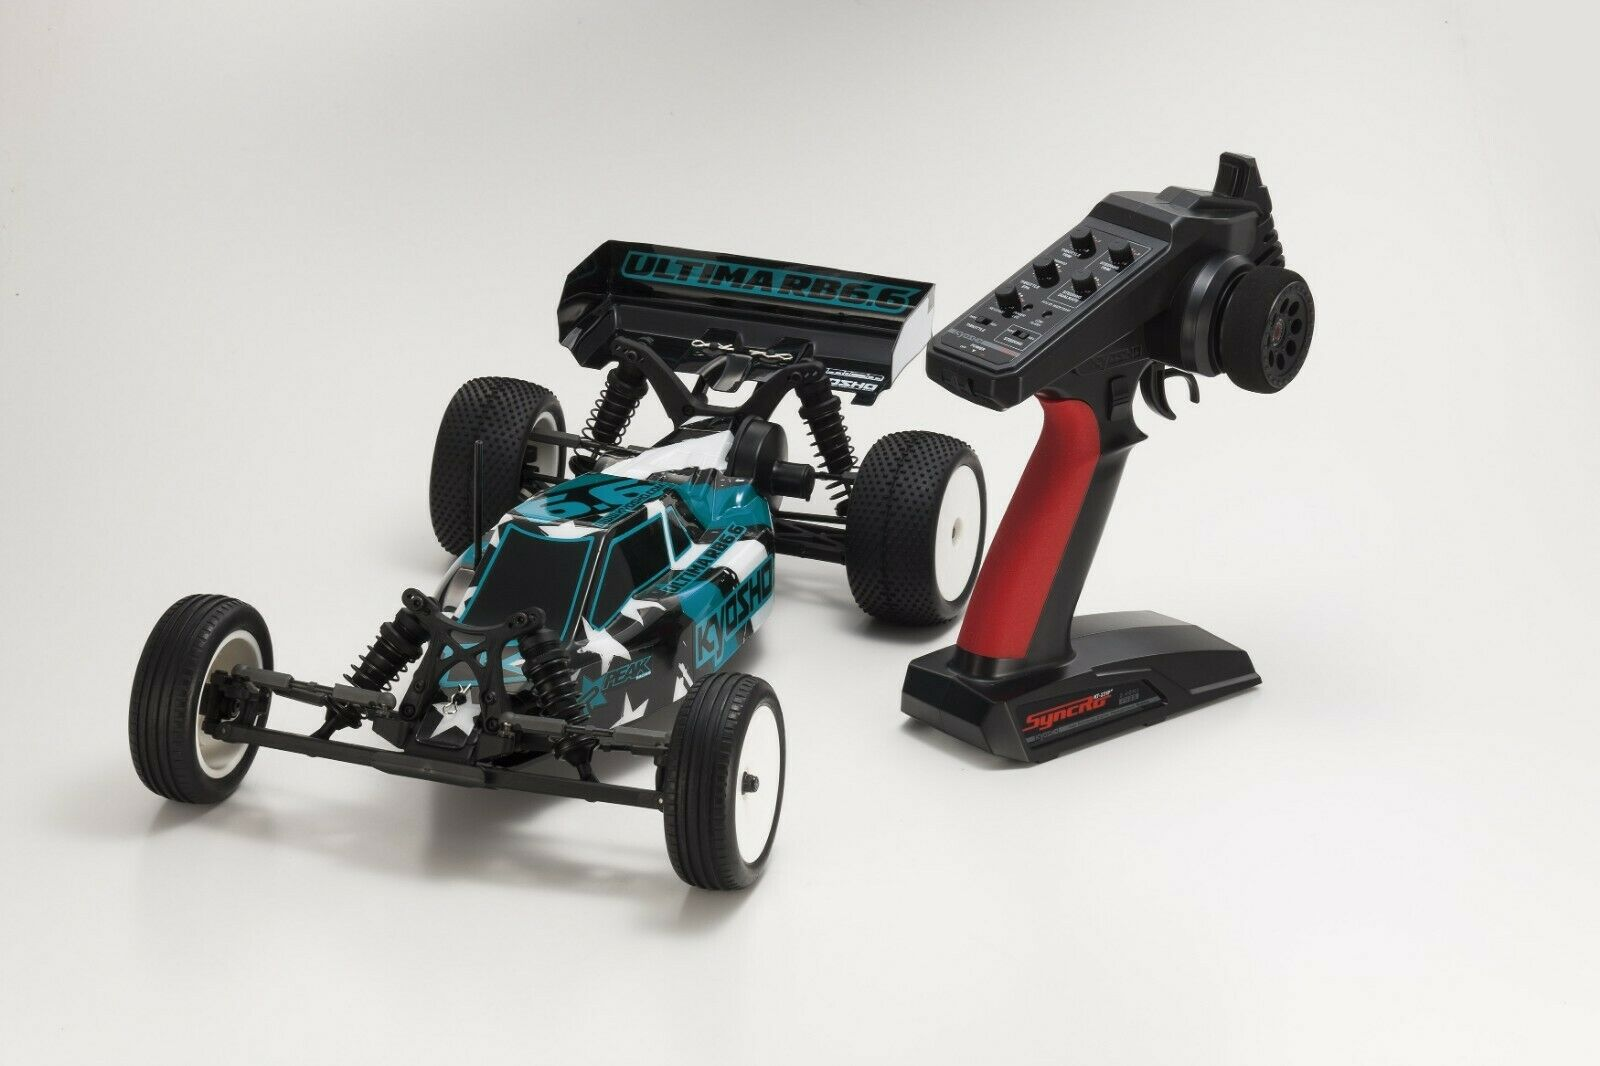 KYOSHO BRAND NEW ULTIMA RB6.6, 10th SCALE, 2WD READYSET (KT231), 34310RS